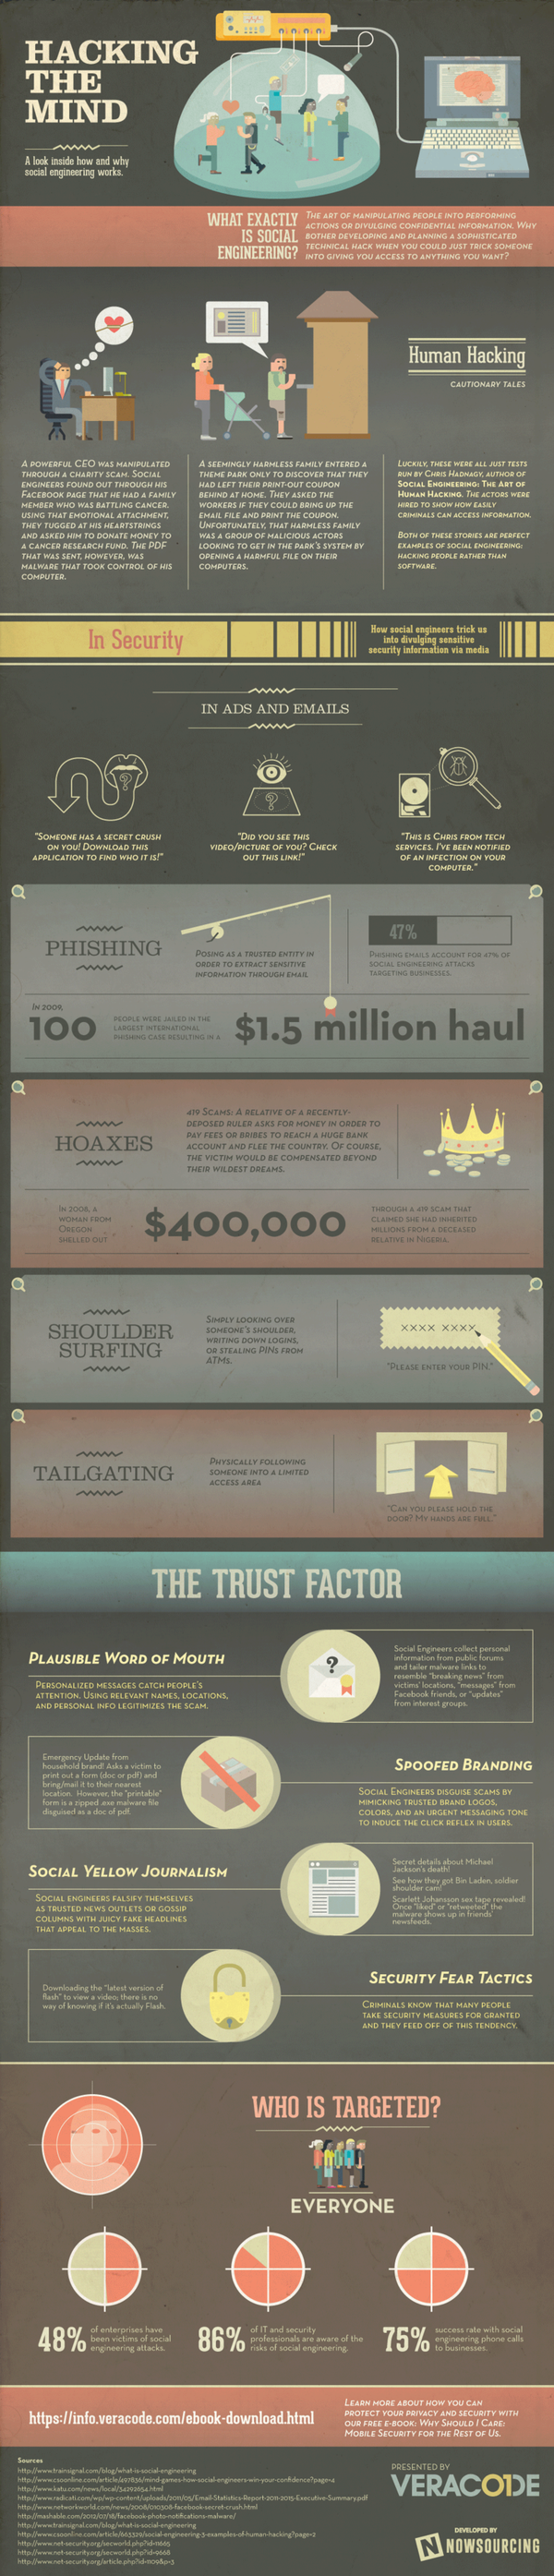 Hacking-the-mind-why-social-engineering-works-infographic_513cbeb6246f0